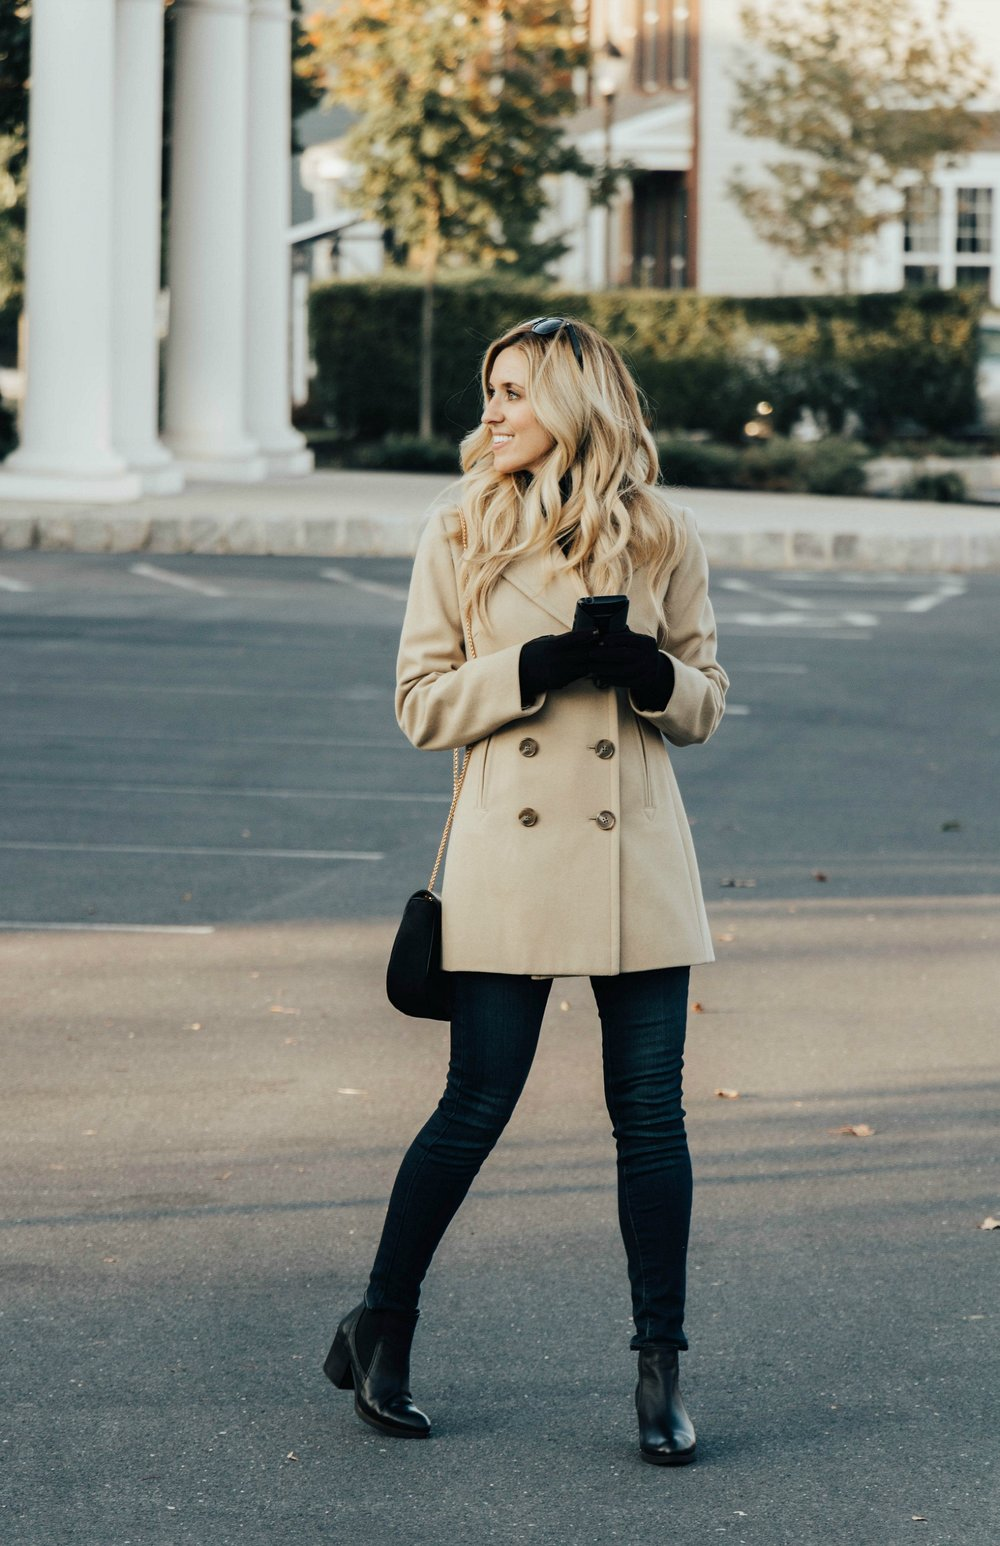 CAMEL COAT - A sophisticated and classic color combo is camel and black. The color alone screams fall. Having a camel coat like this one from Hello Gorgeous Consignment Boutique is the absolute number one essential to have.